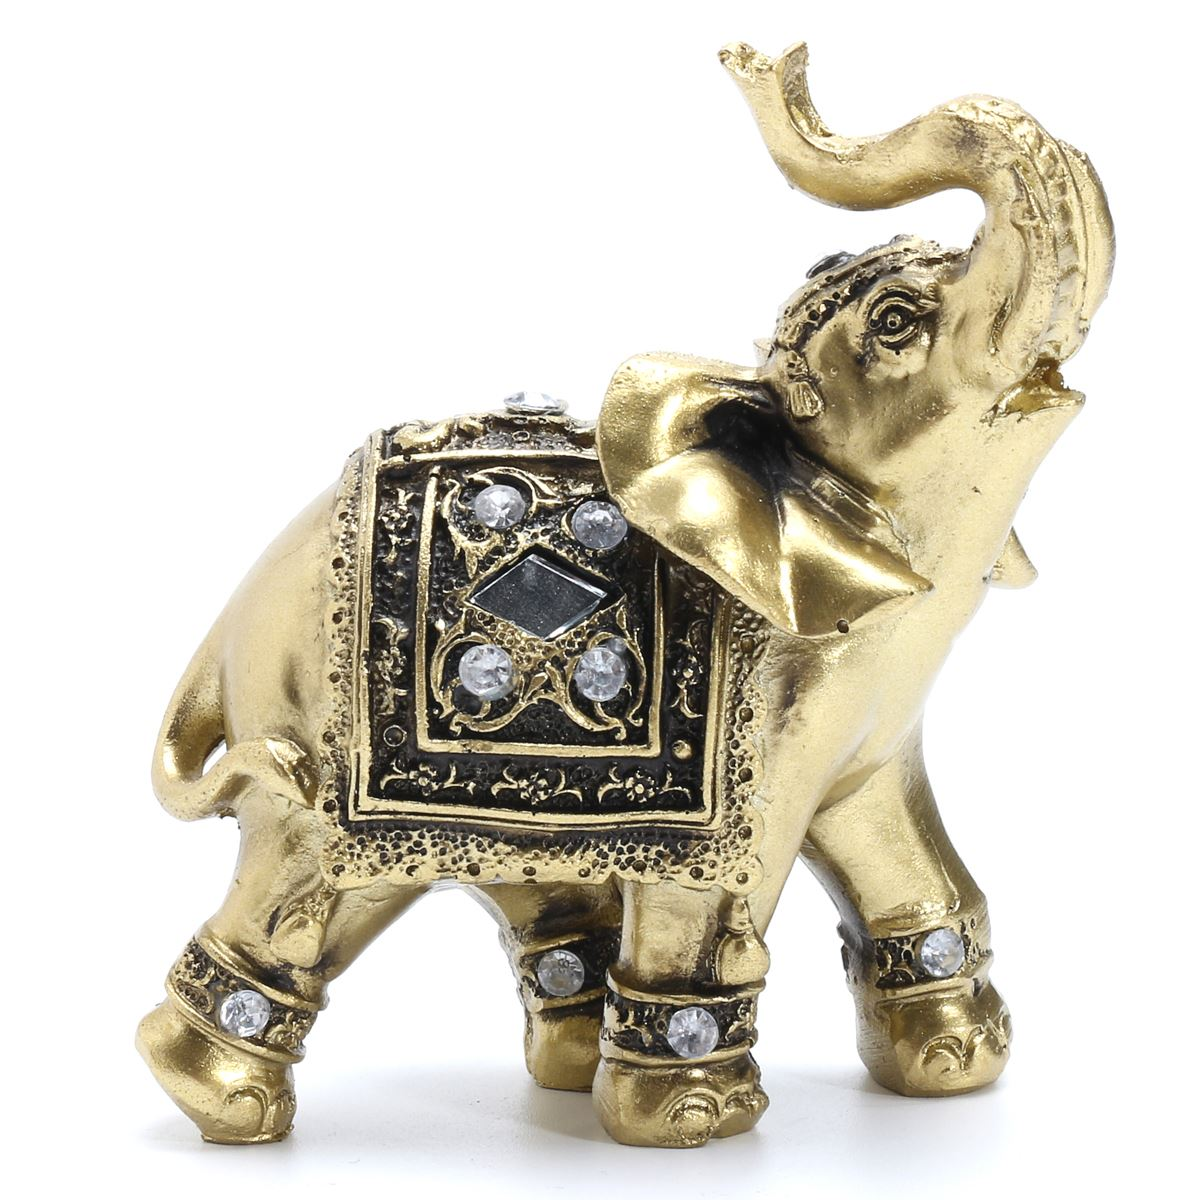 elephant statue resin decorative figurines elephant with diamond souvenir garden figures. Black Bedroom Furniture Sets. Home Design Ideas